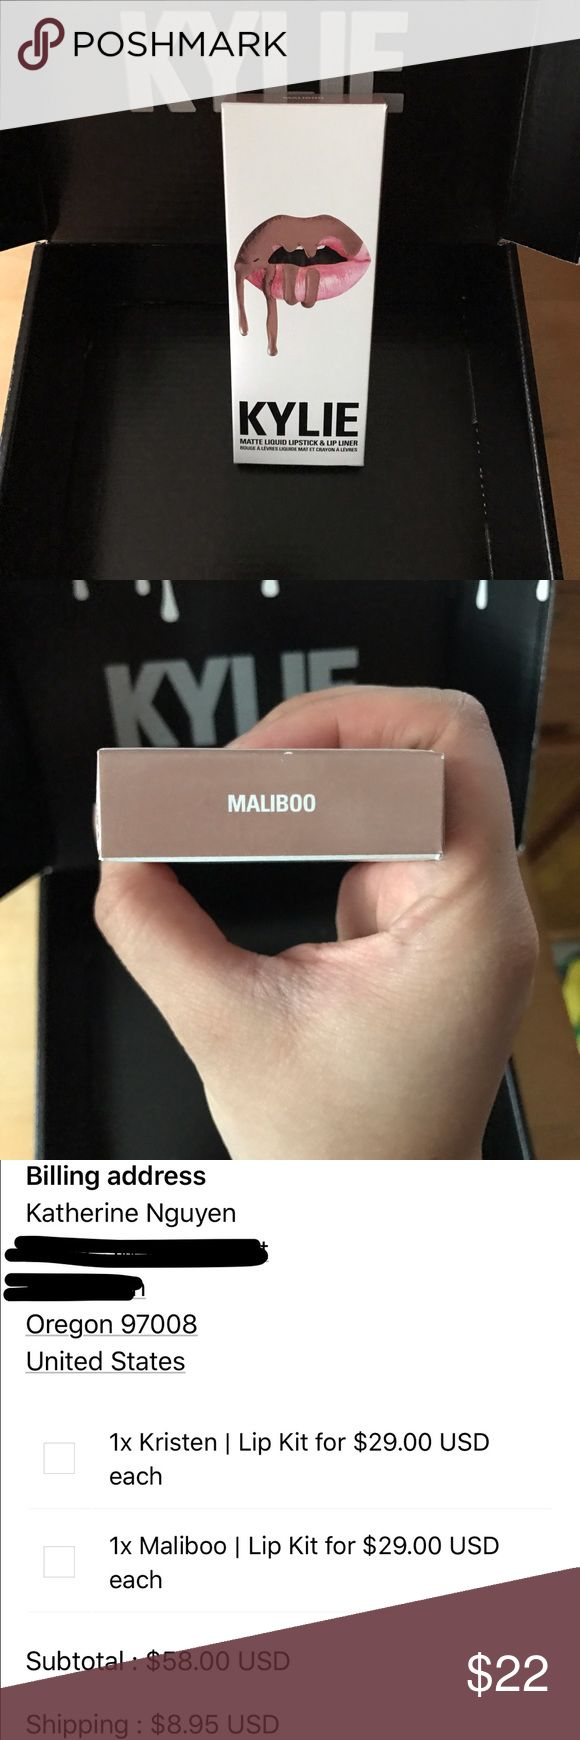 """Kylie Lip Kit """"Maliboo"""" Brand new, never been used. Authentic. I have a huge makeup collection that I haven't used, just like to buy whatever is trendy. However, I'm trying to sell most of my collection for school tuition so I'm just parting away with the ones I don't think I'll need. I'm not looking for a profit, just hoping to make some money back. Comes with lip liner and lip matte, but will be sent in a regular envelope. Kylie Cosmetics Makeup Lipstick"""